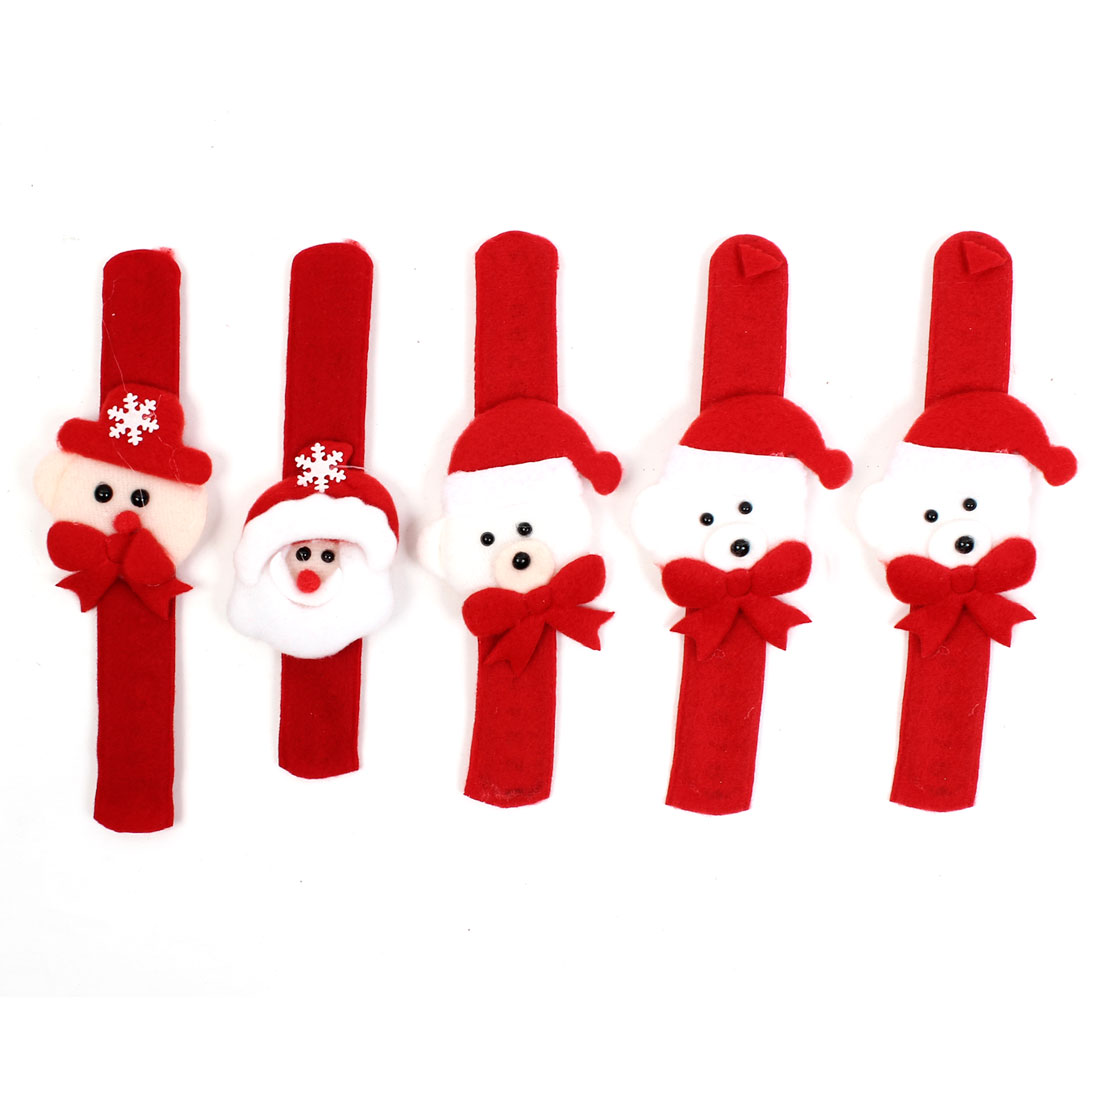 5pcs Xmas Santa Claus Decor Slap Pat Christmas Bracelet Wristband Hand Ring Red White